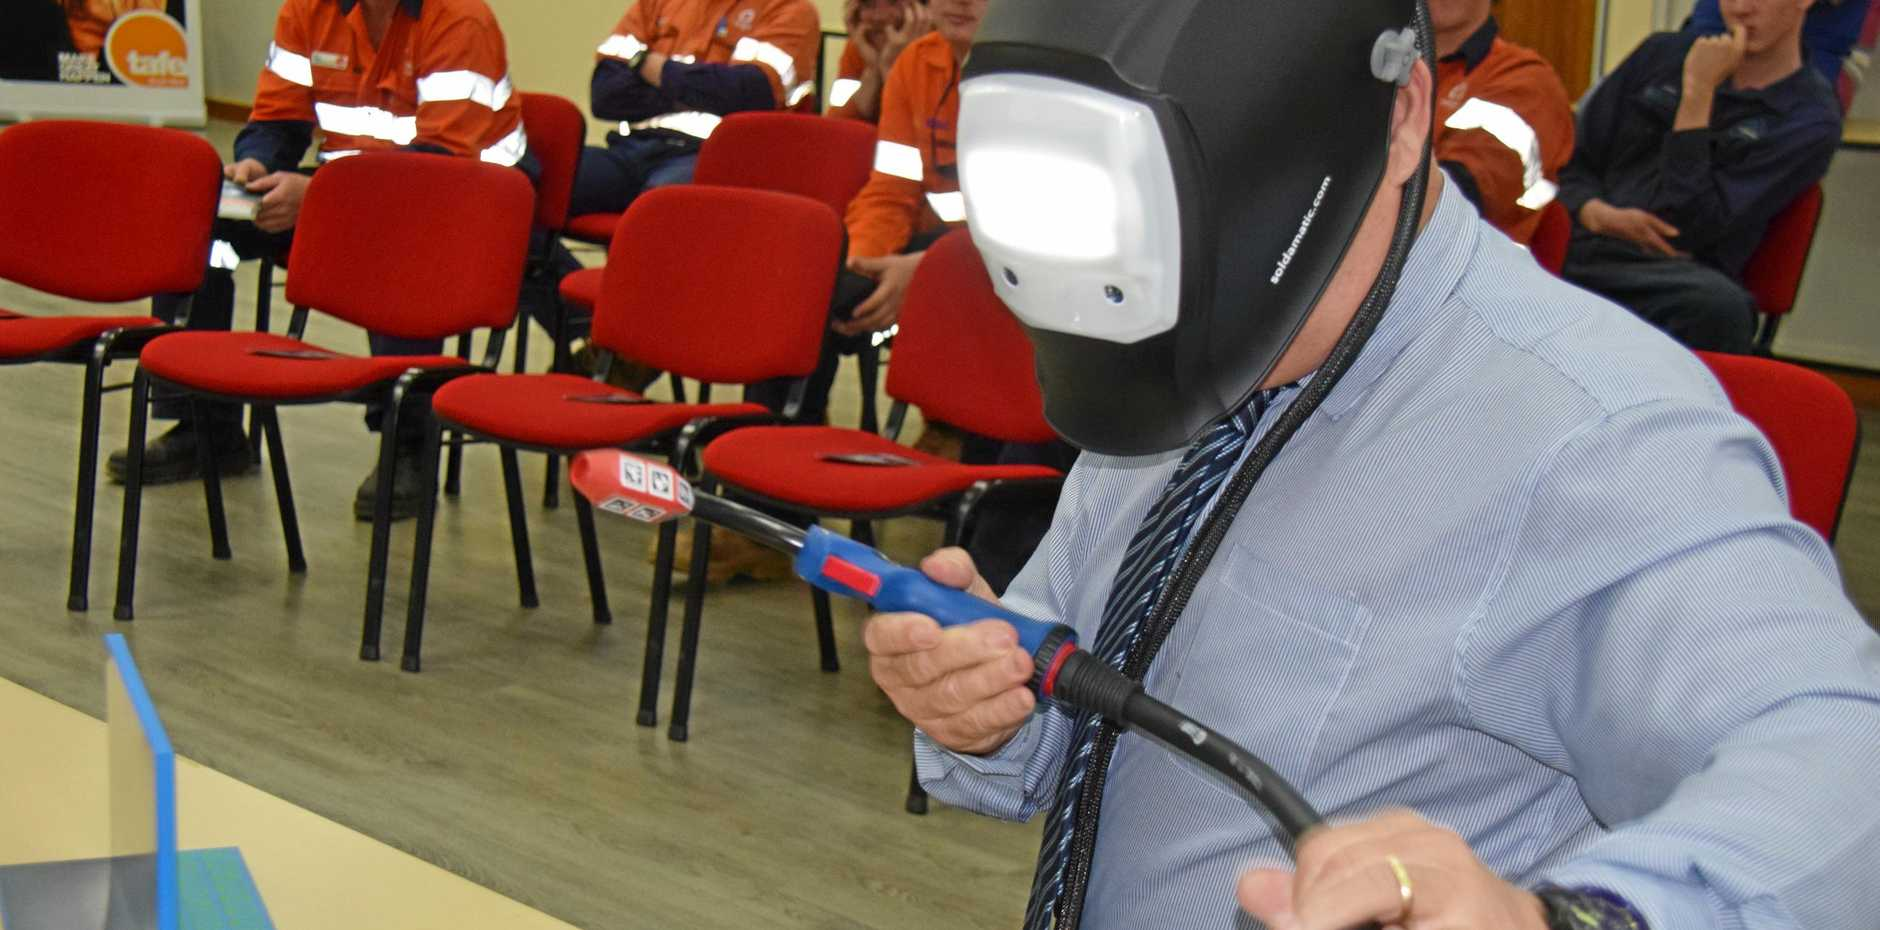 AUGMENTED REALITY: Garry Hargreaves from Tafe Queensland demonstrates fusion welding to attendees at the South West Tafe in Kingaroy.